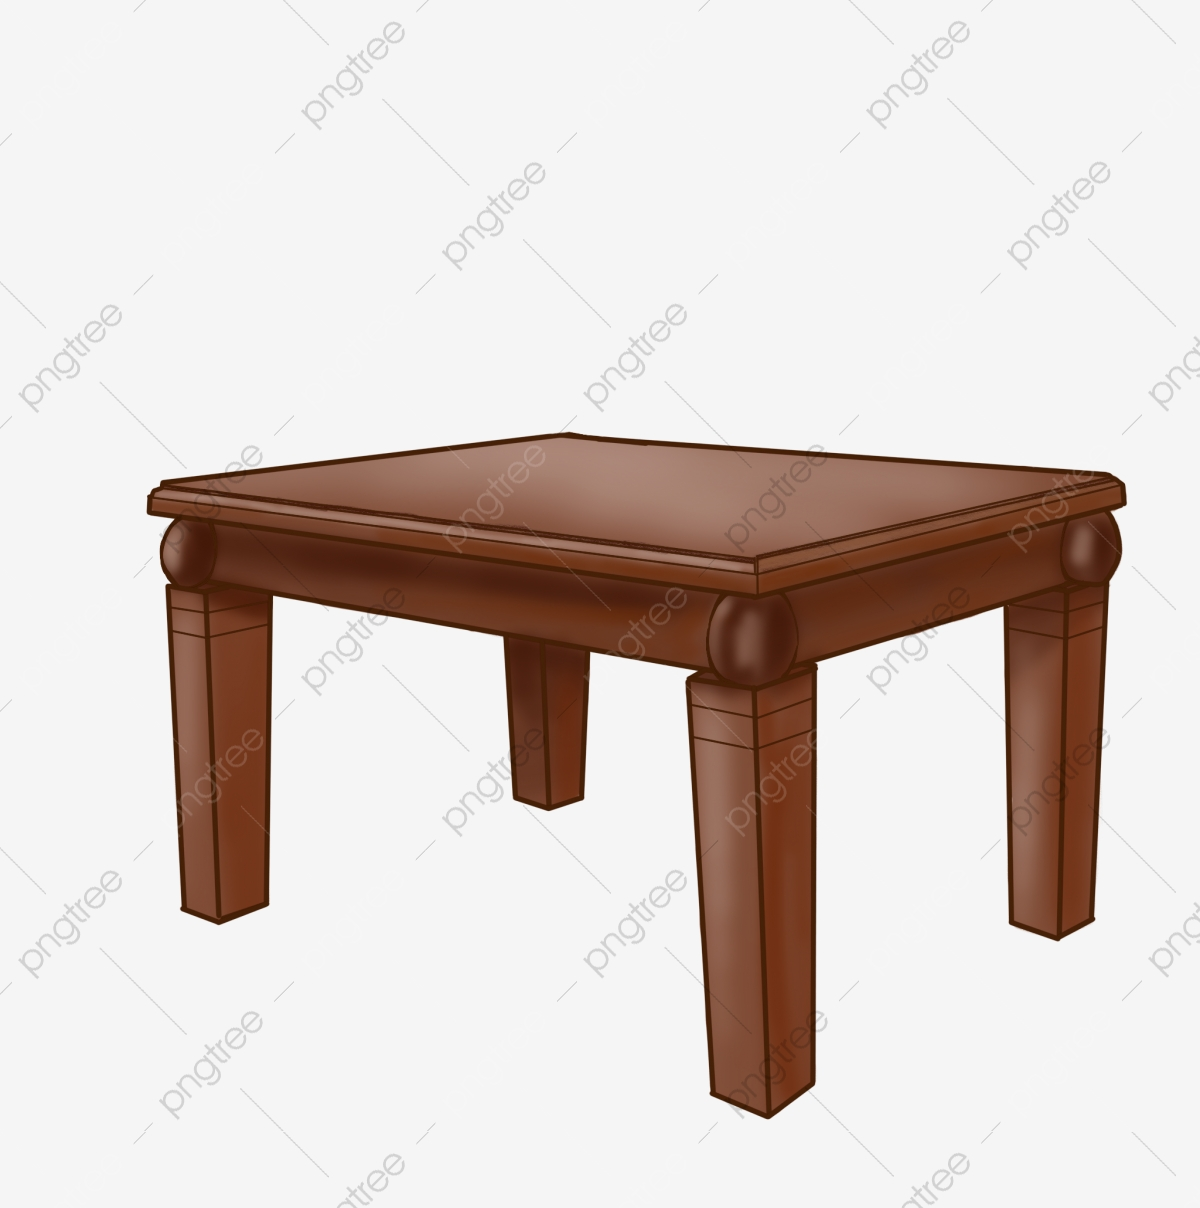 Dining flat cartoon illustration. Clipart table brown table